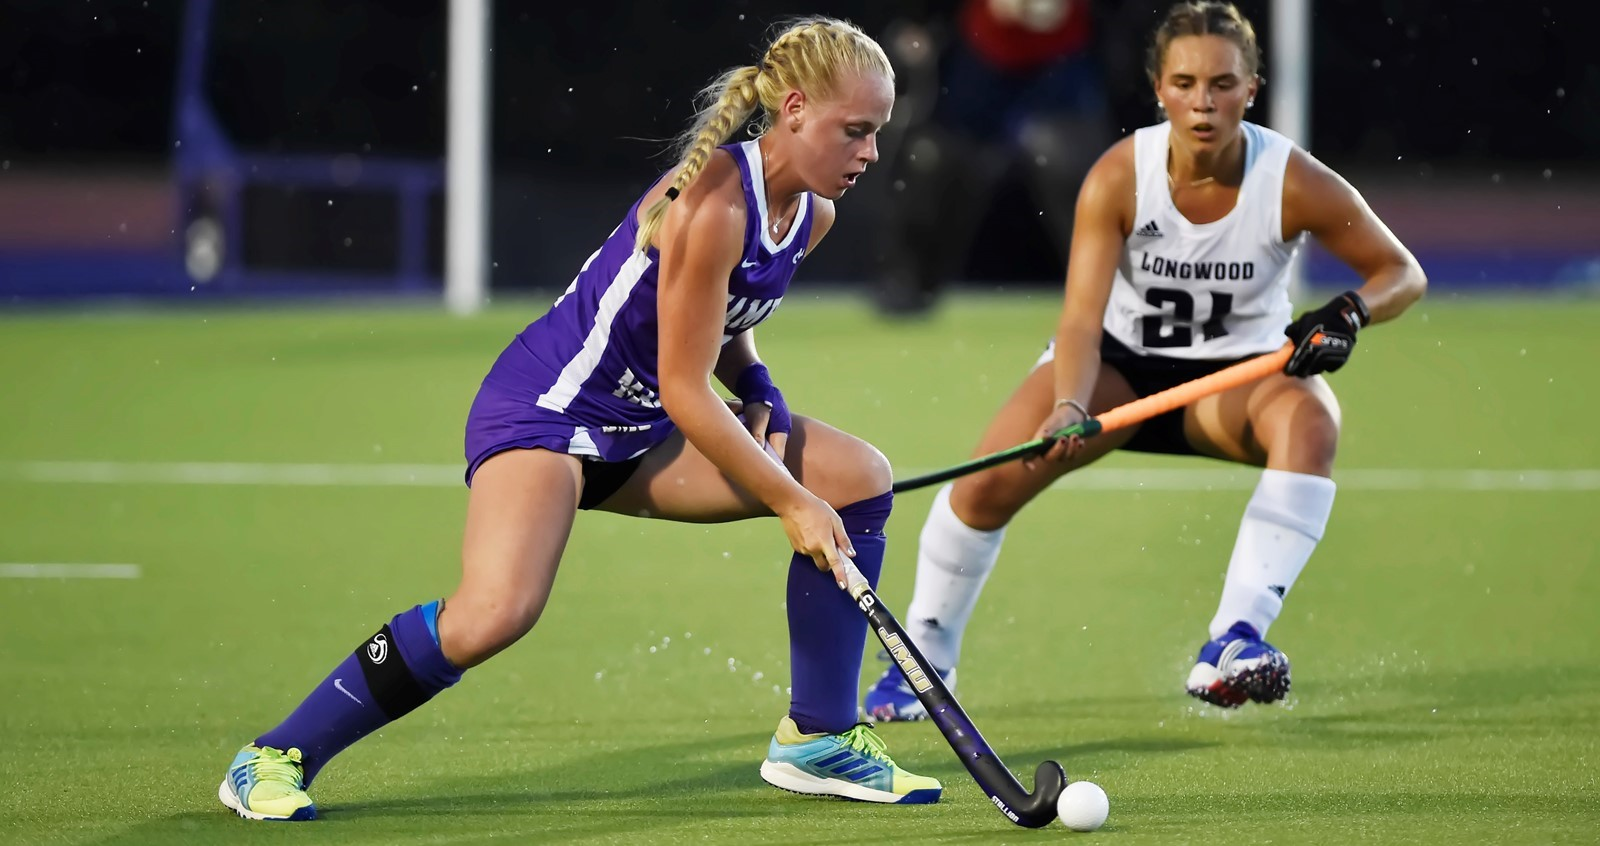 Field Hockey: No. 19 JMU Topples Longwood 6-2